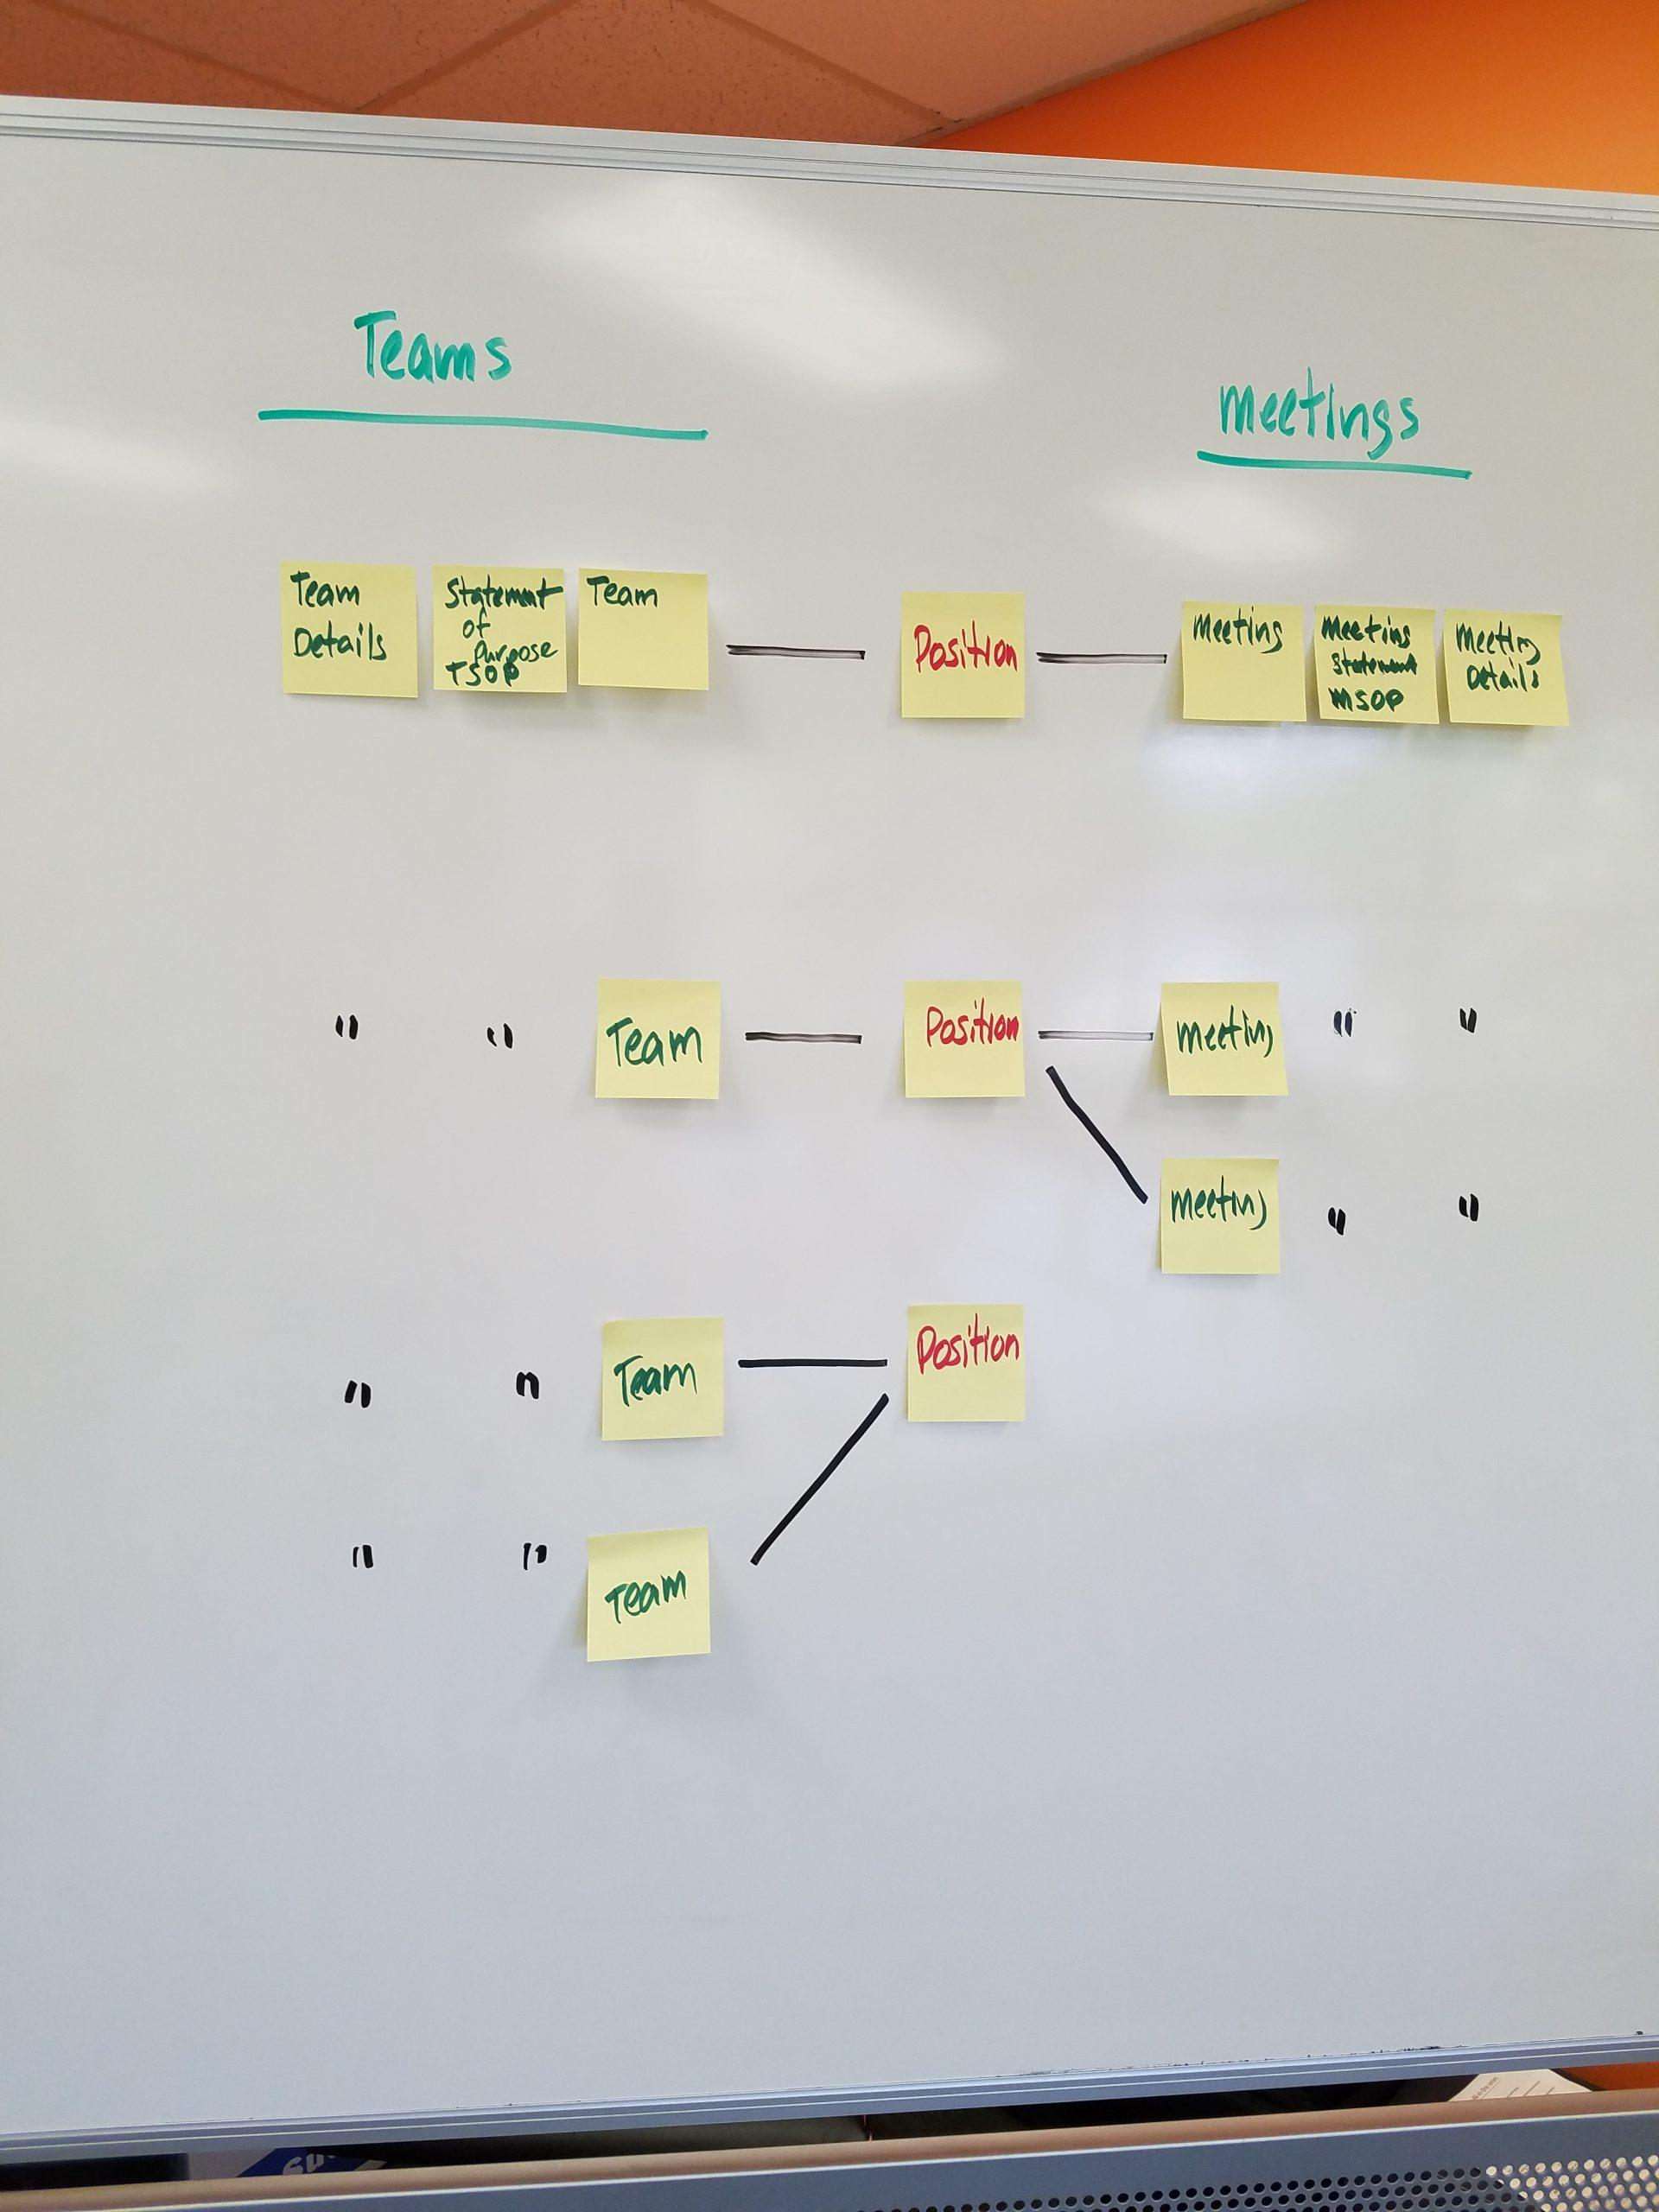 org graph, another whiteboard, when we started using the word position at the heart of our org graph database model and schema